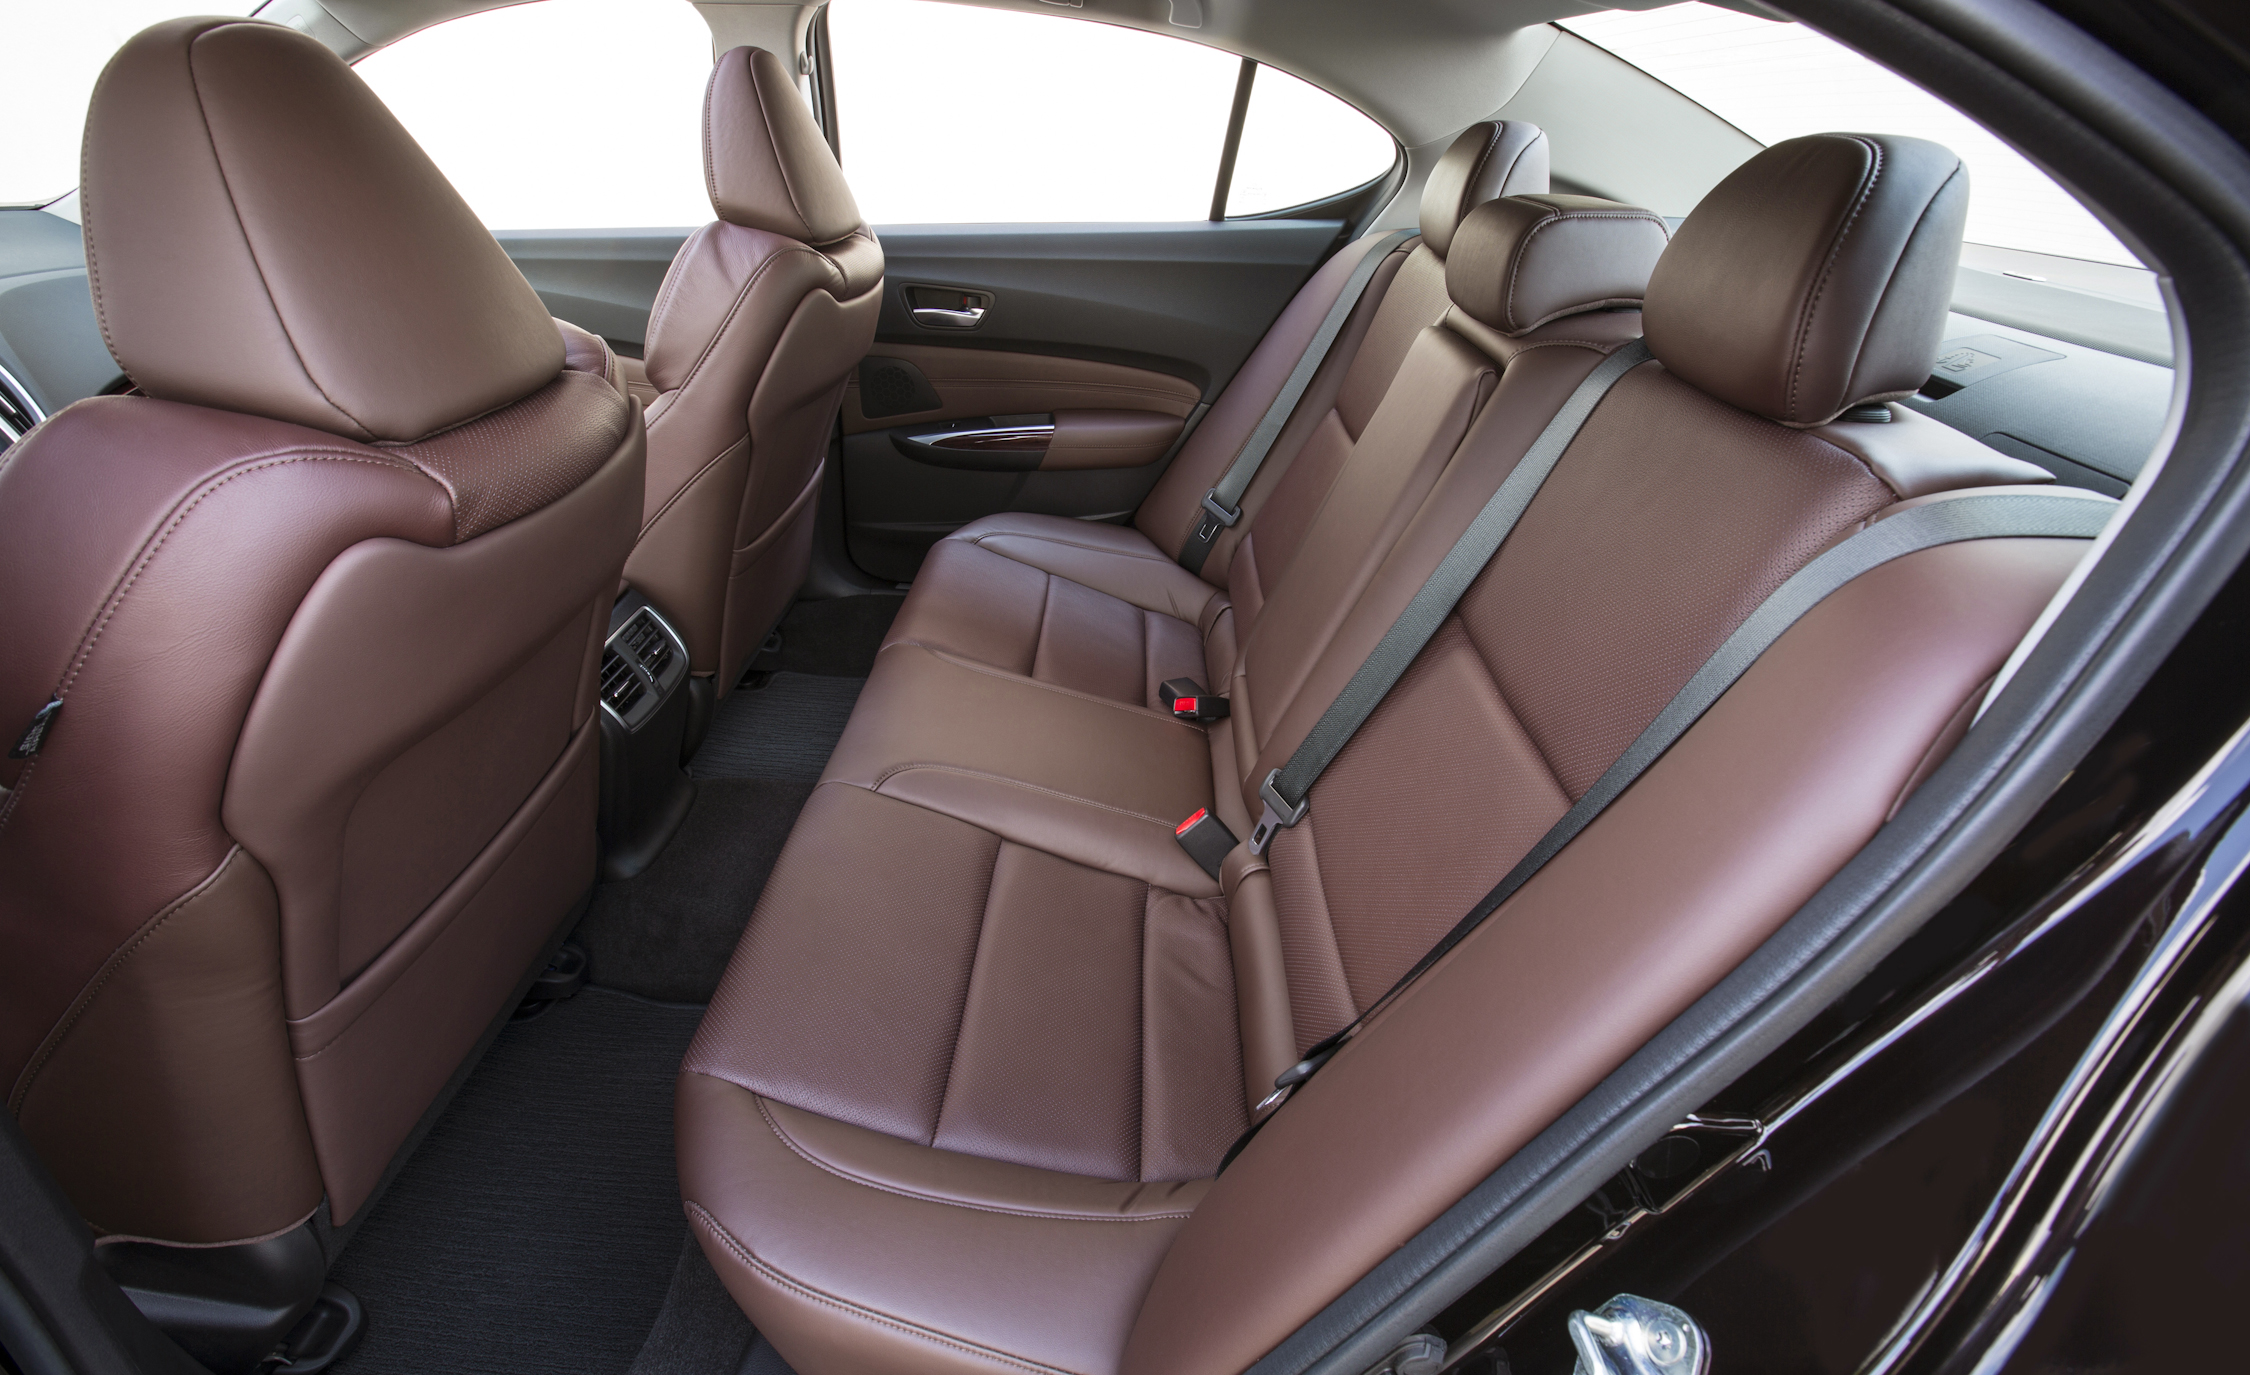 2015 Acura TLX 3.5L Interior Rear Seats